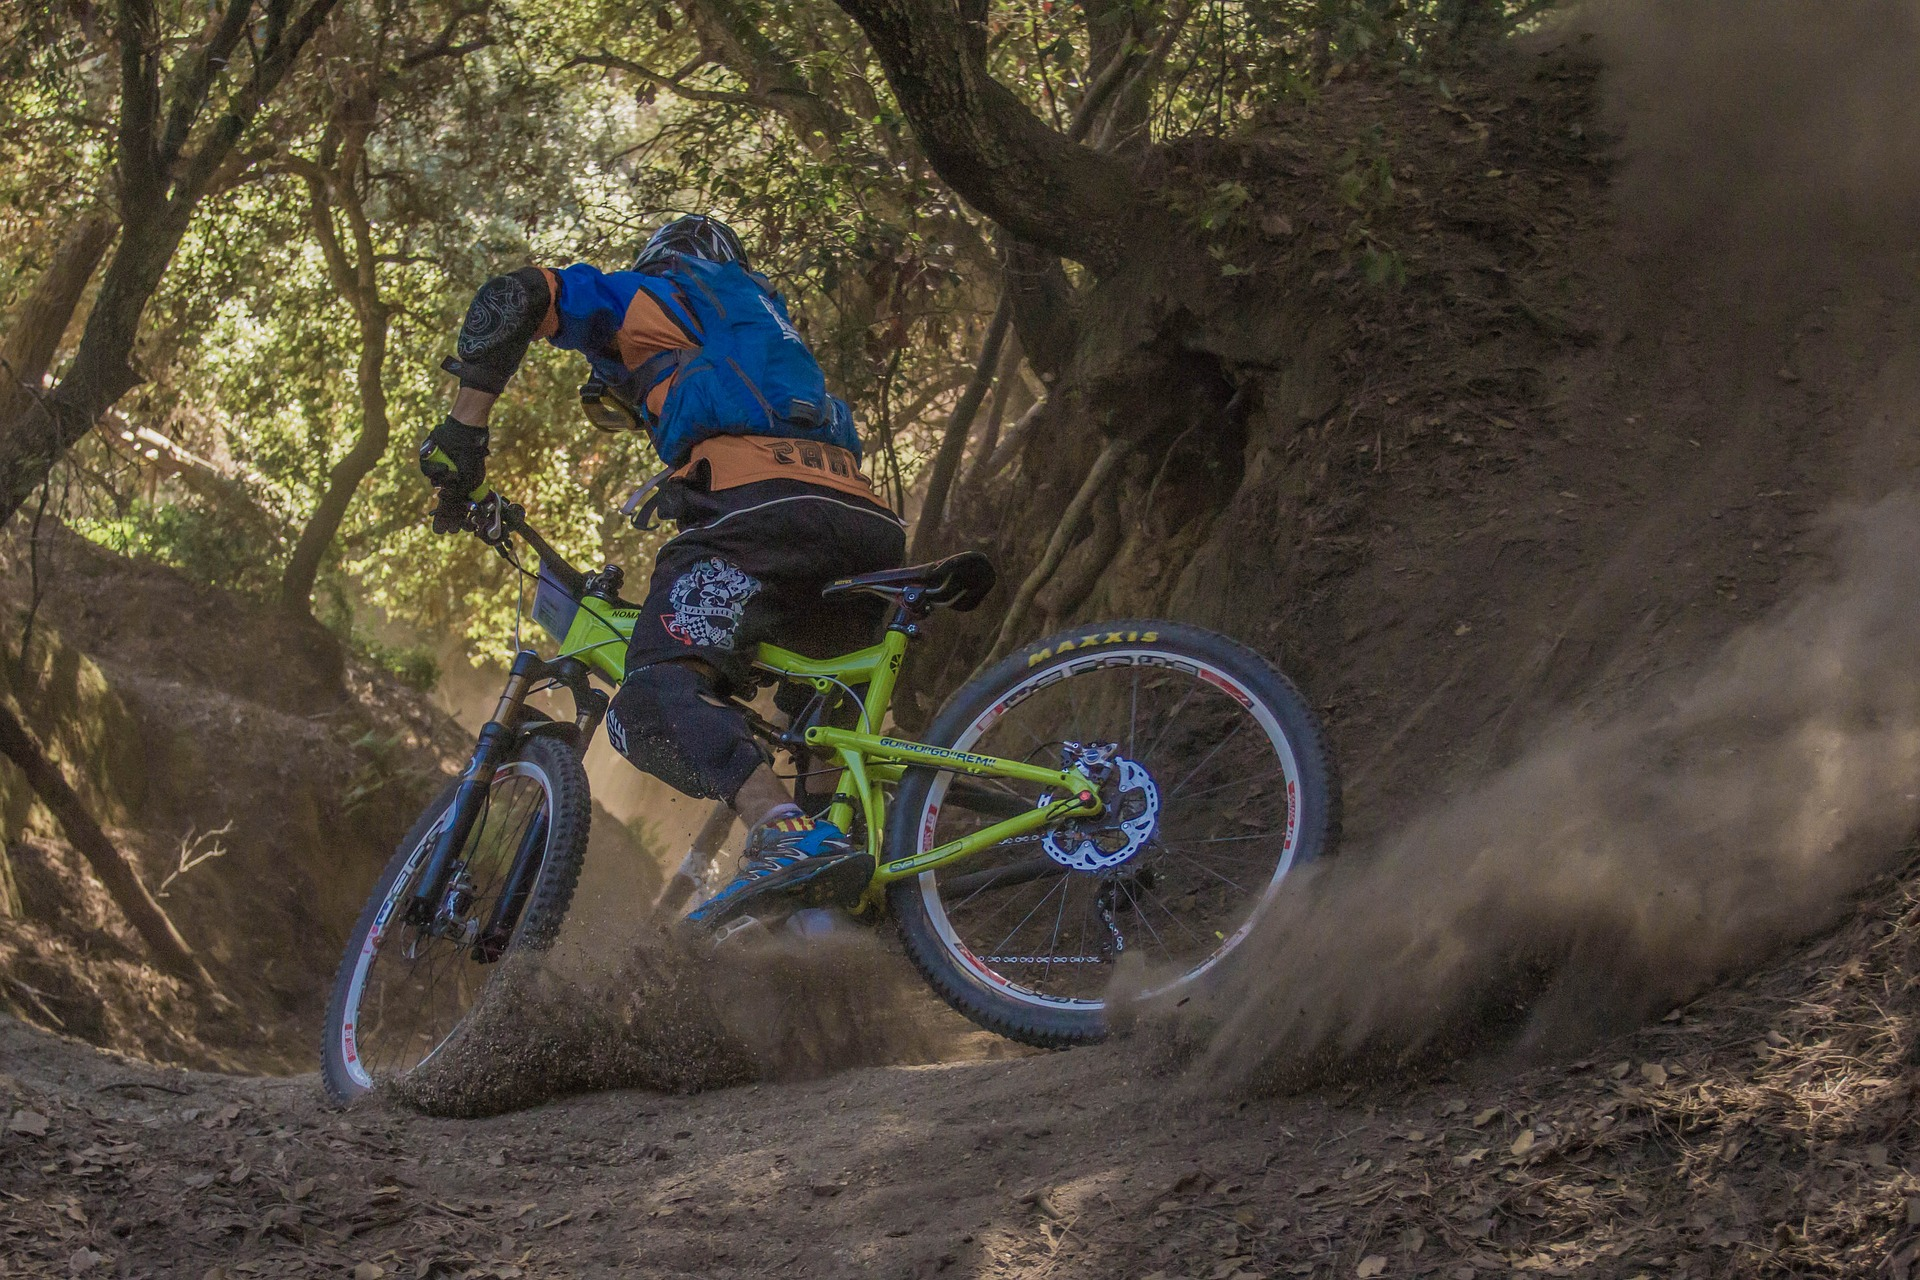 There are numerous trails that descend the mountain providing thrills for any mountain biker.